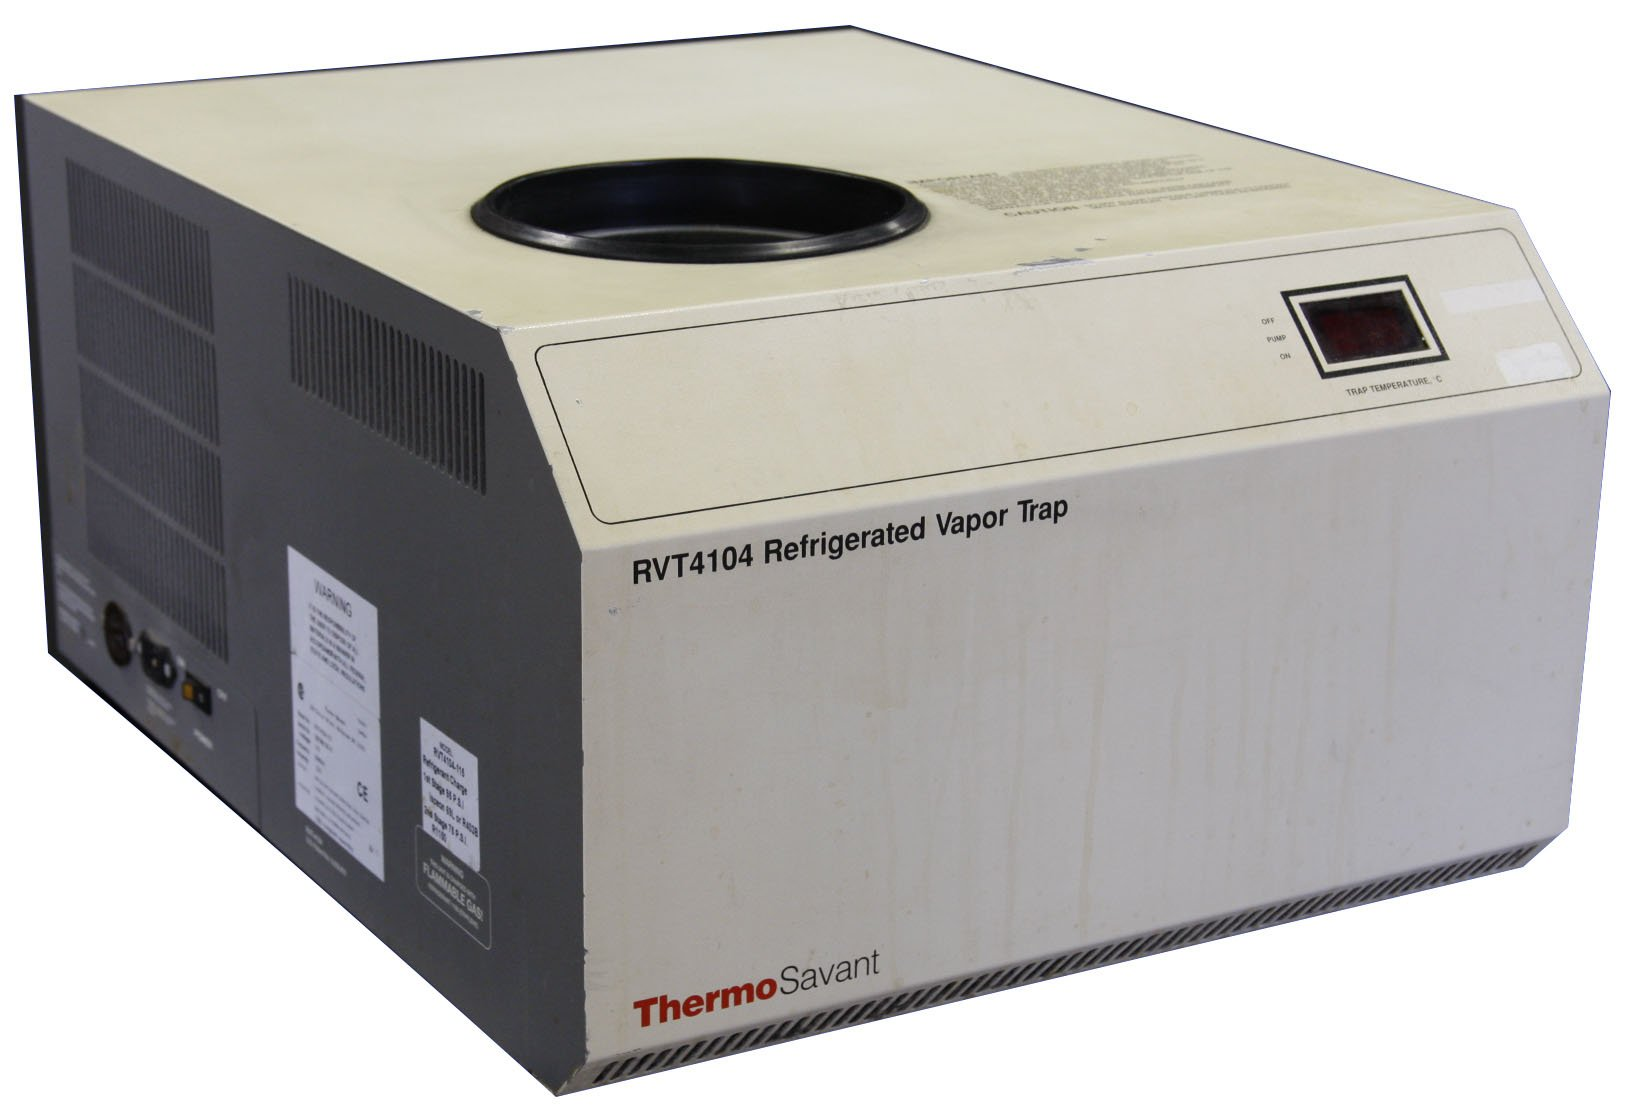 Thermo Savant Refrigerated Vapor Trap Model RVT 4104